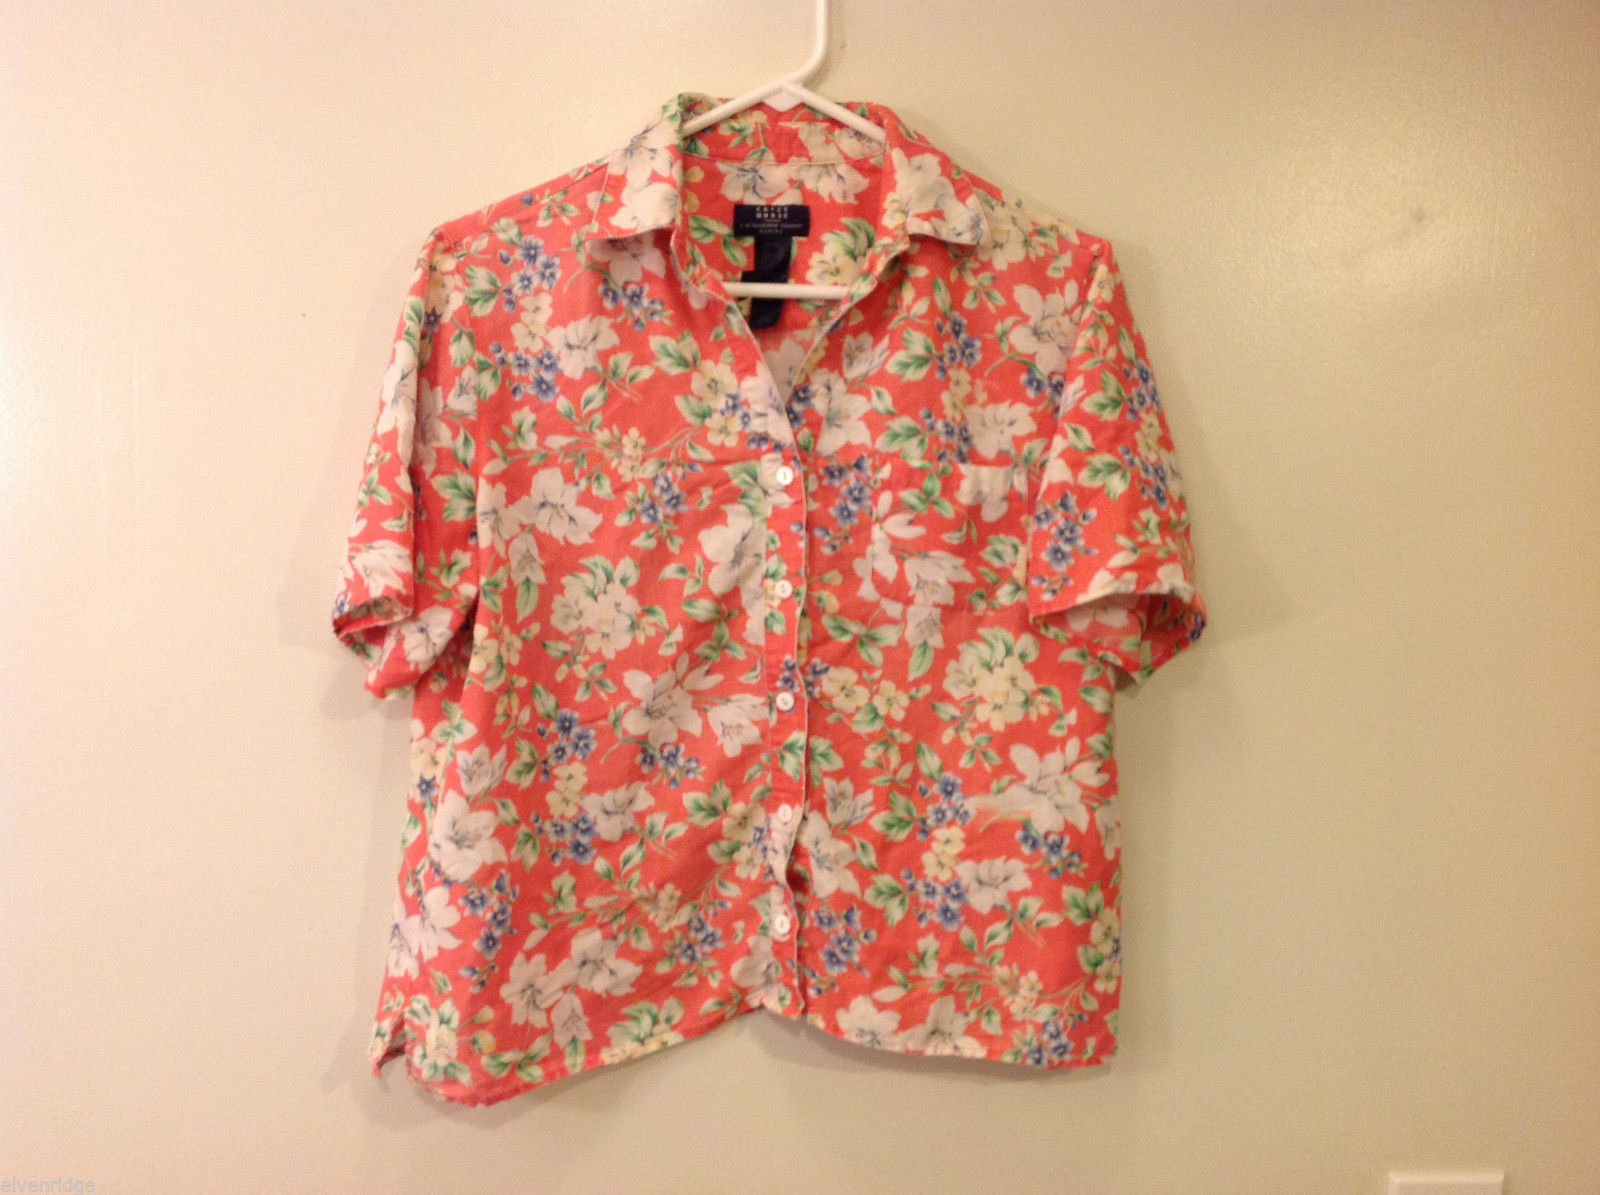 Crazy Horse Women Petite XL Coral Pink Hawaiian Style Floral Flower Print Shirt